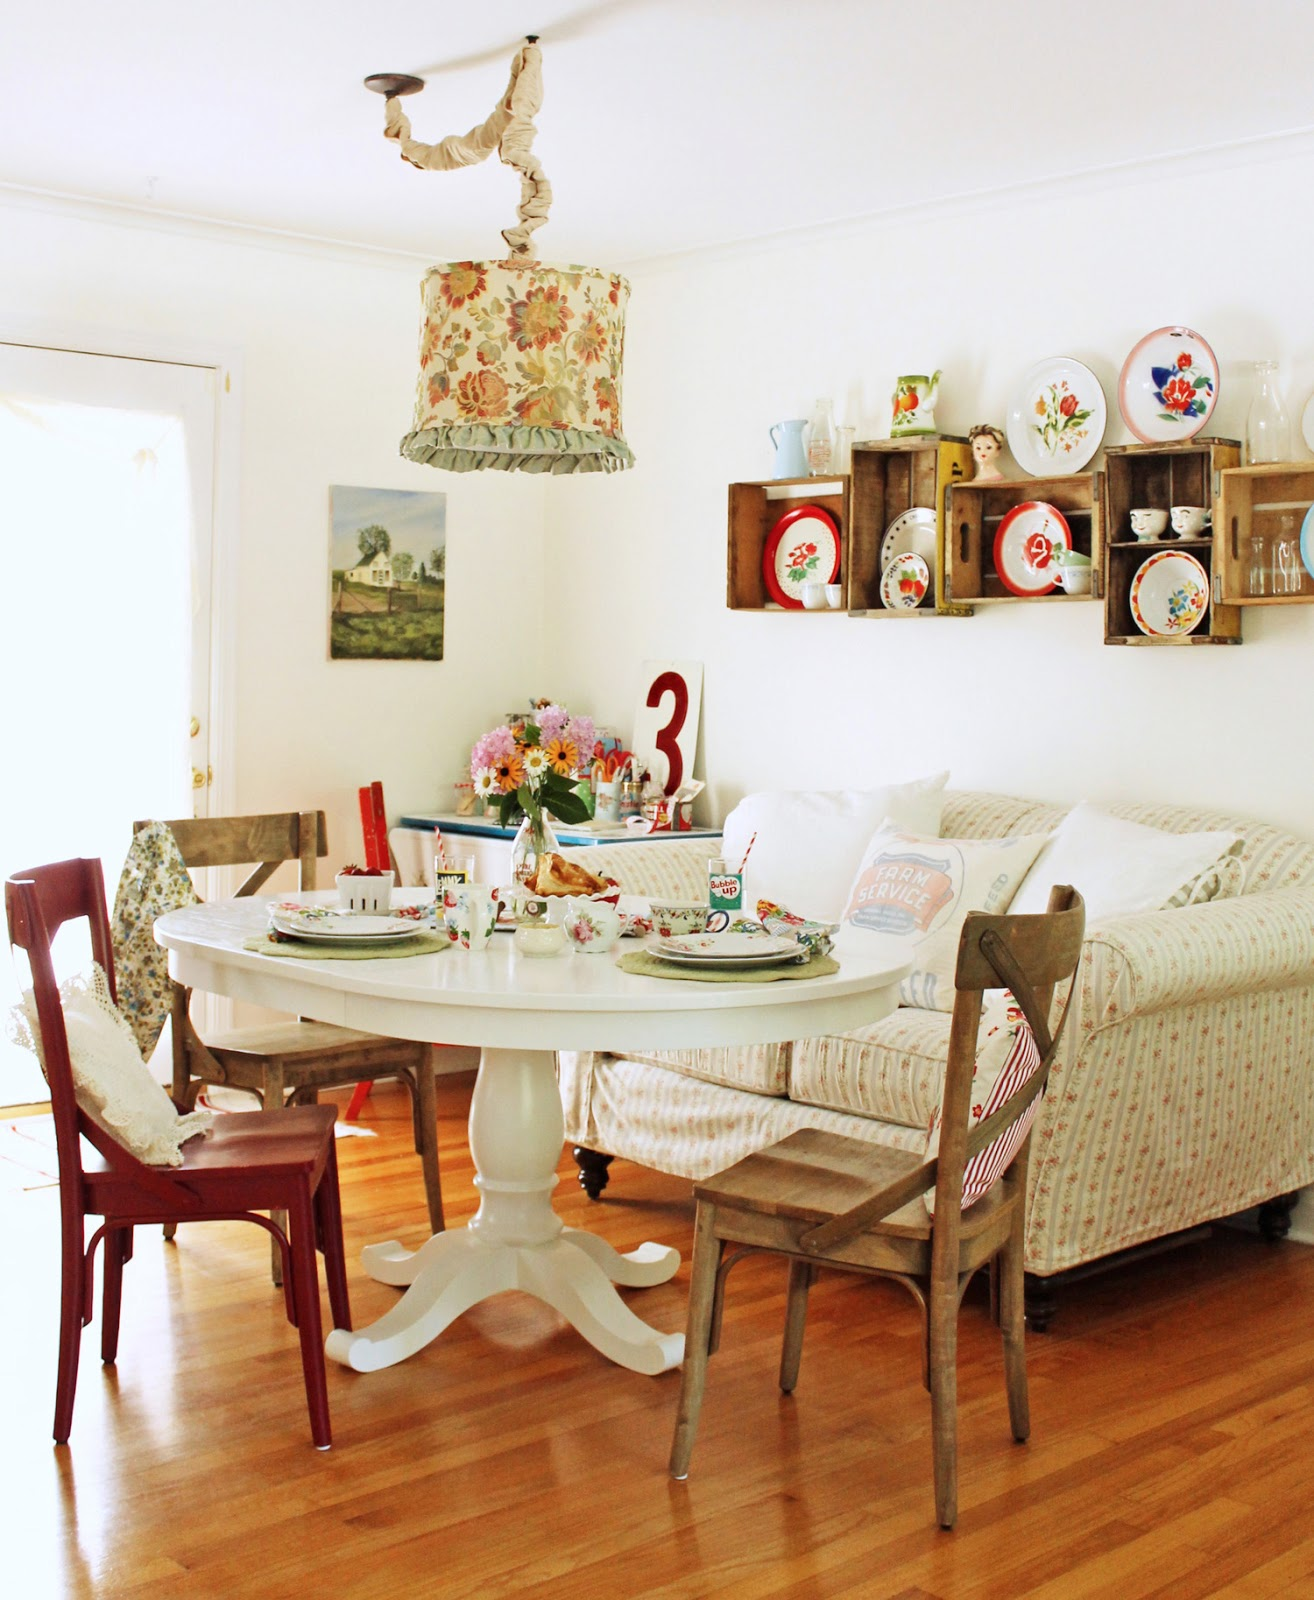 Cottage Dining Room: Cottage Of The Week Starring Sort Of A Fairytale